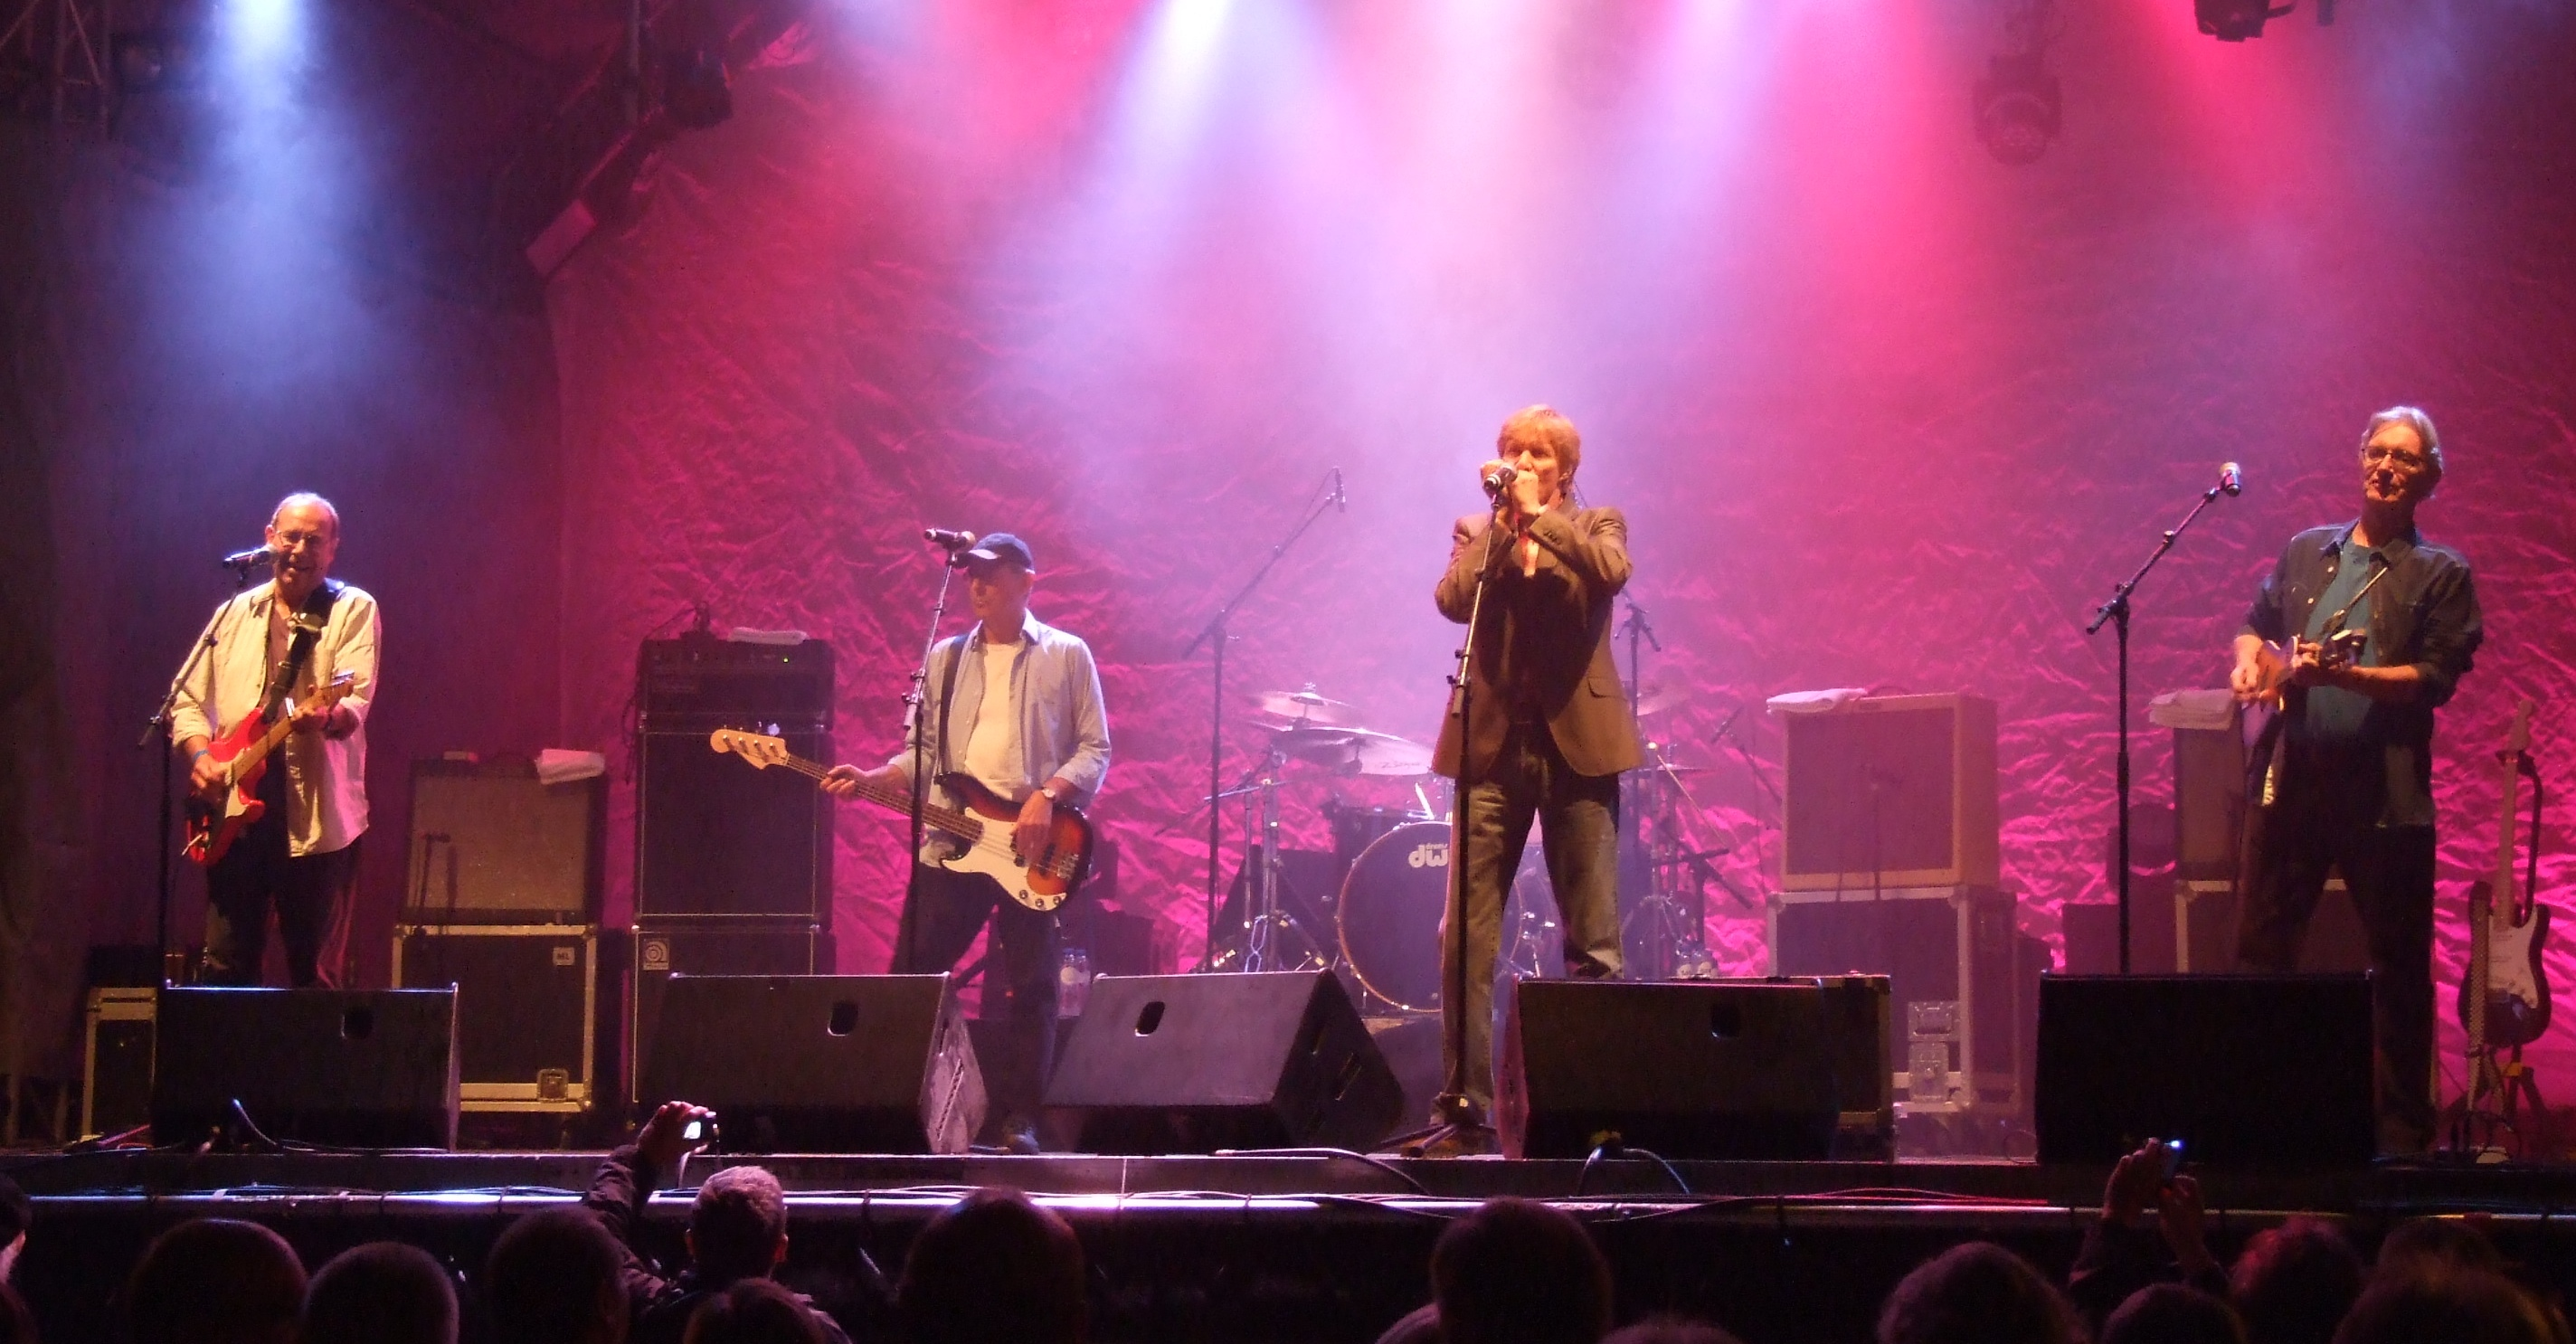 File:The Blues Band, concert 2012-09.jpg - Wikimedia Commons